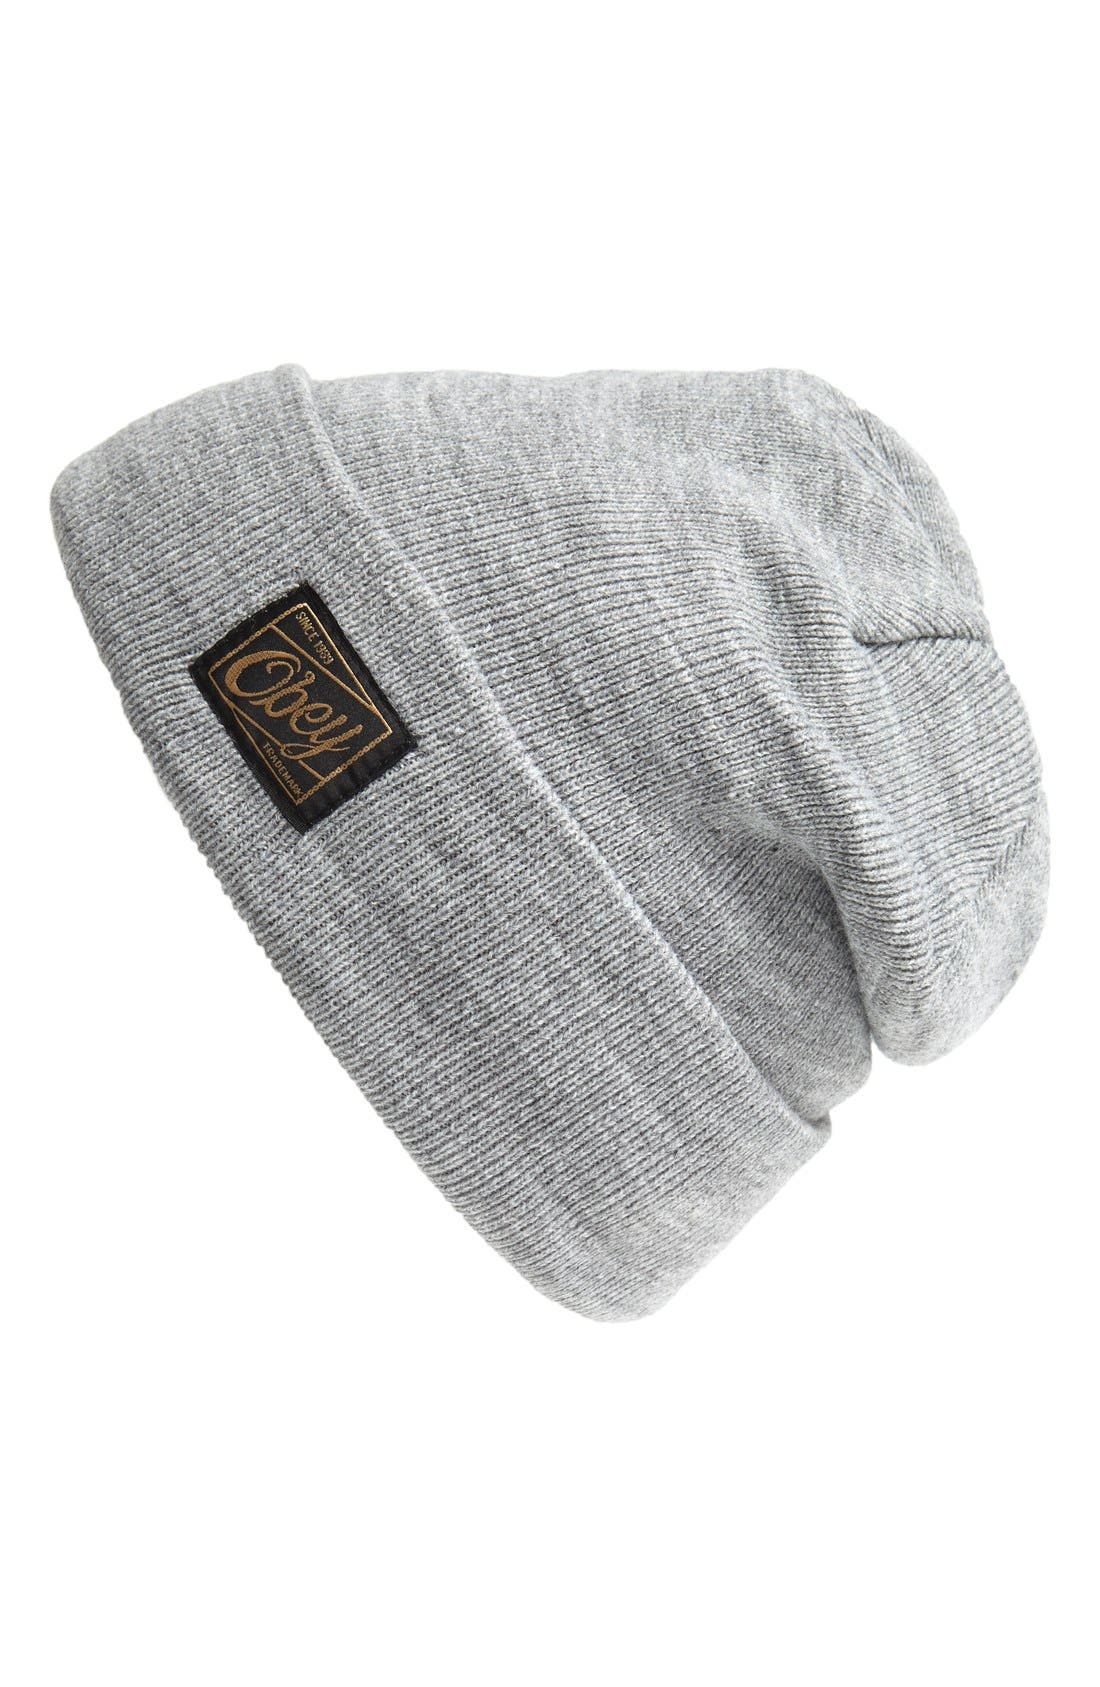 Main Image - Obey 'Jobber' Beanie